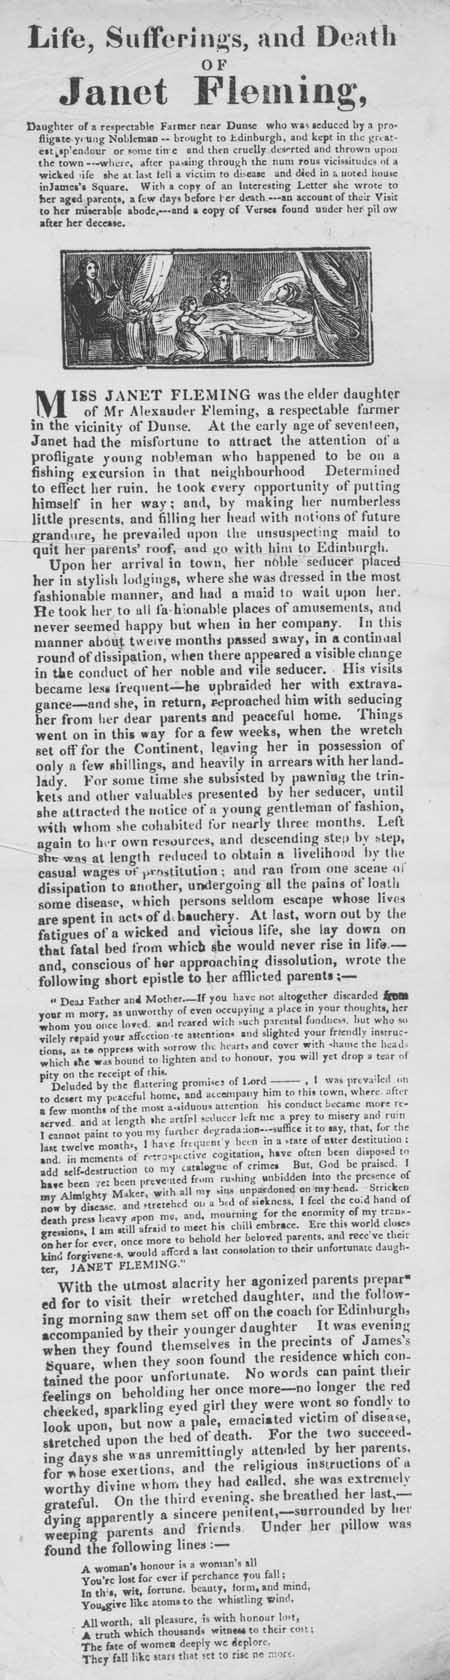 Broadside entitled 'Life, Sufferings, and Death of Janet Fleming'